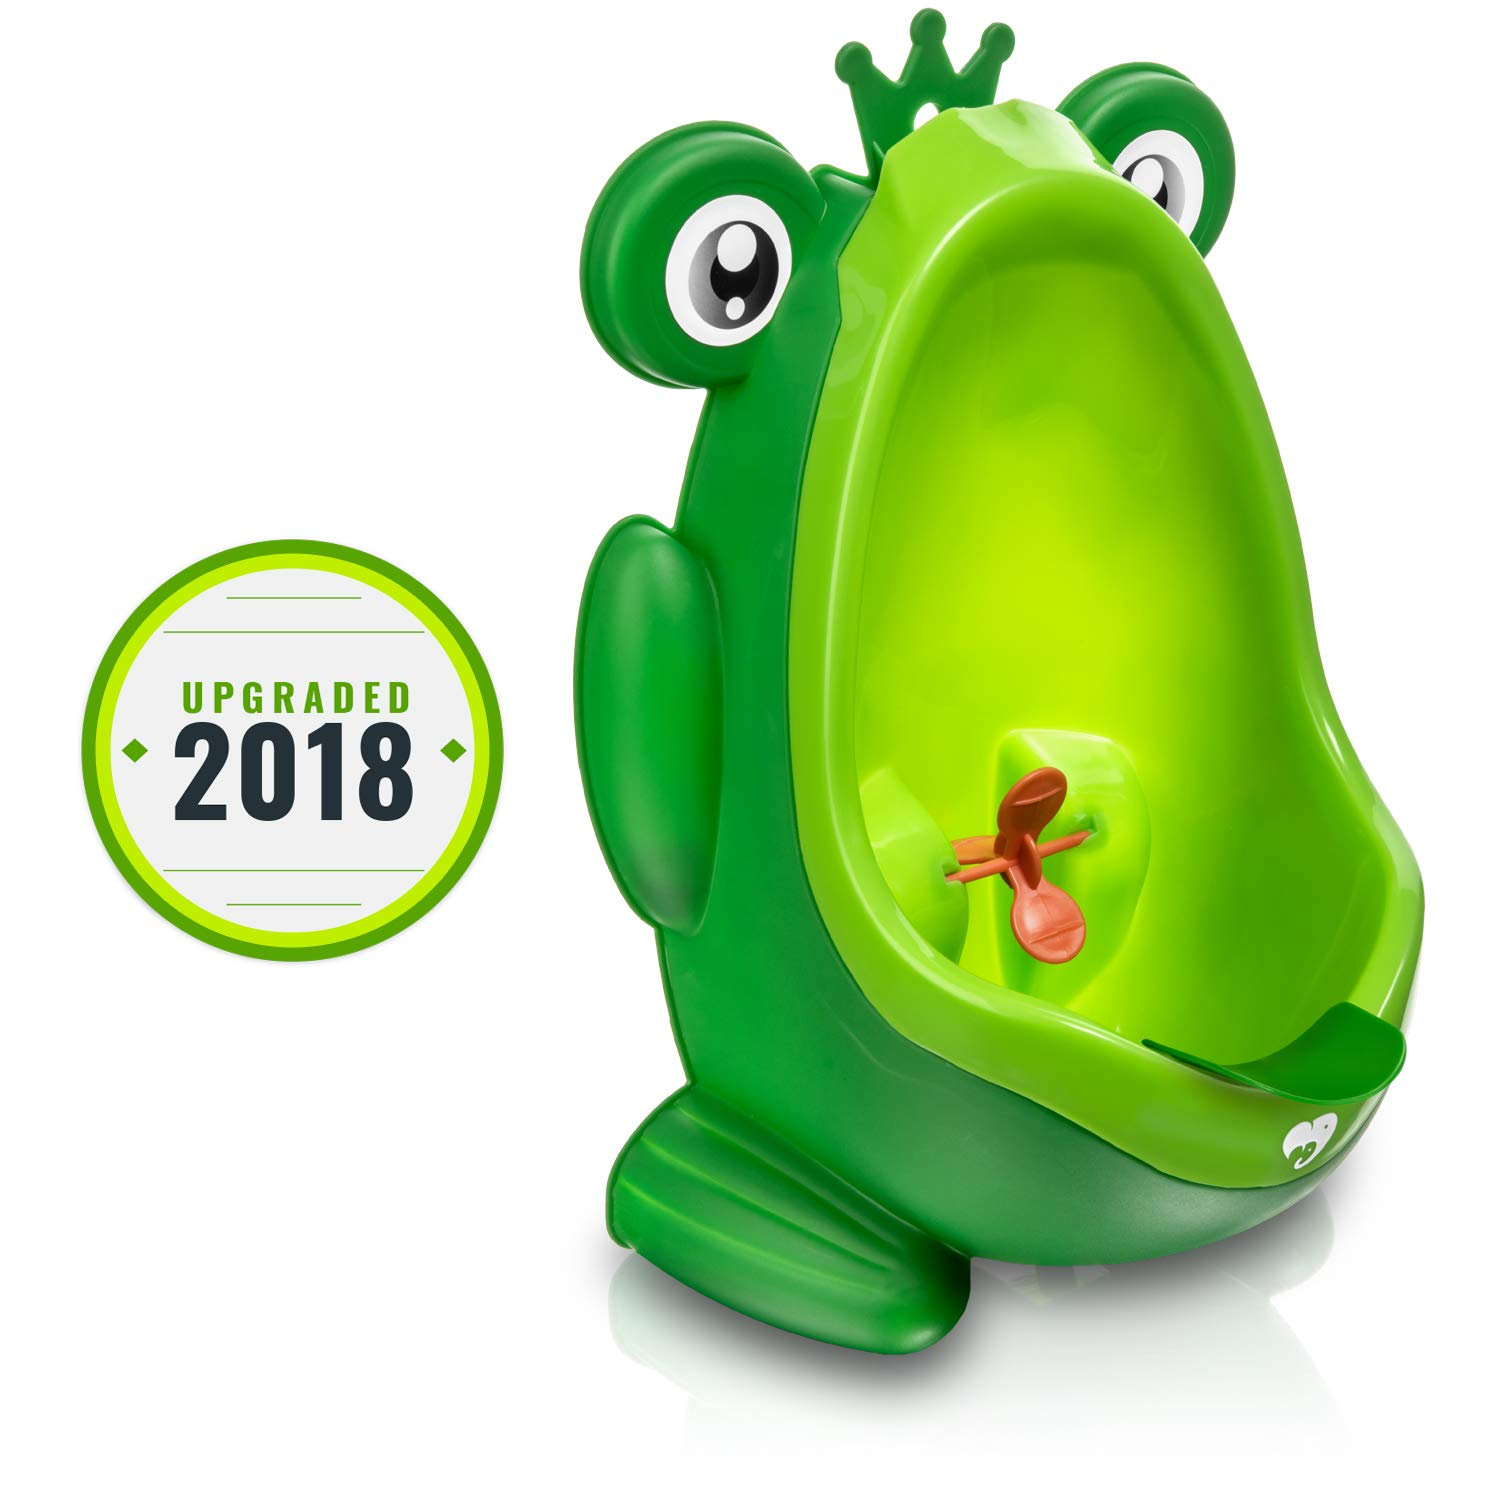 Frog Potty Training Urinal for Boys Toilet with Funny Aiming Target - Green Purple Safety